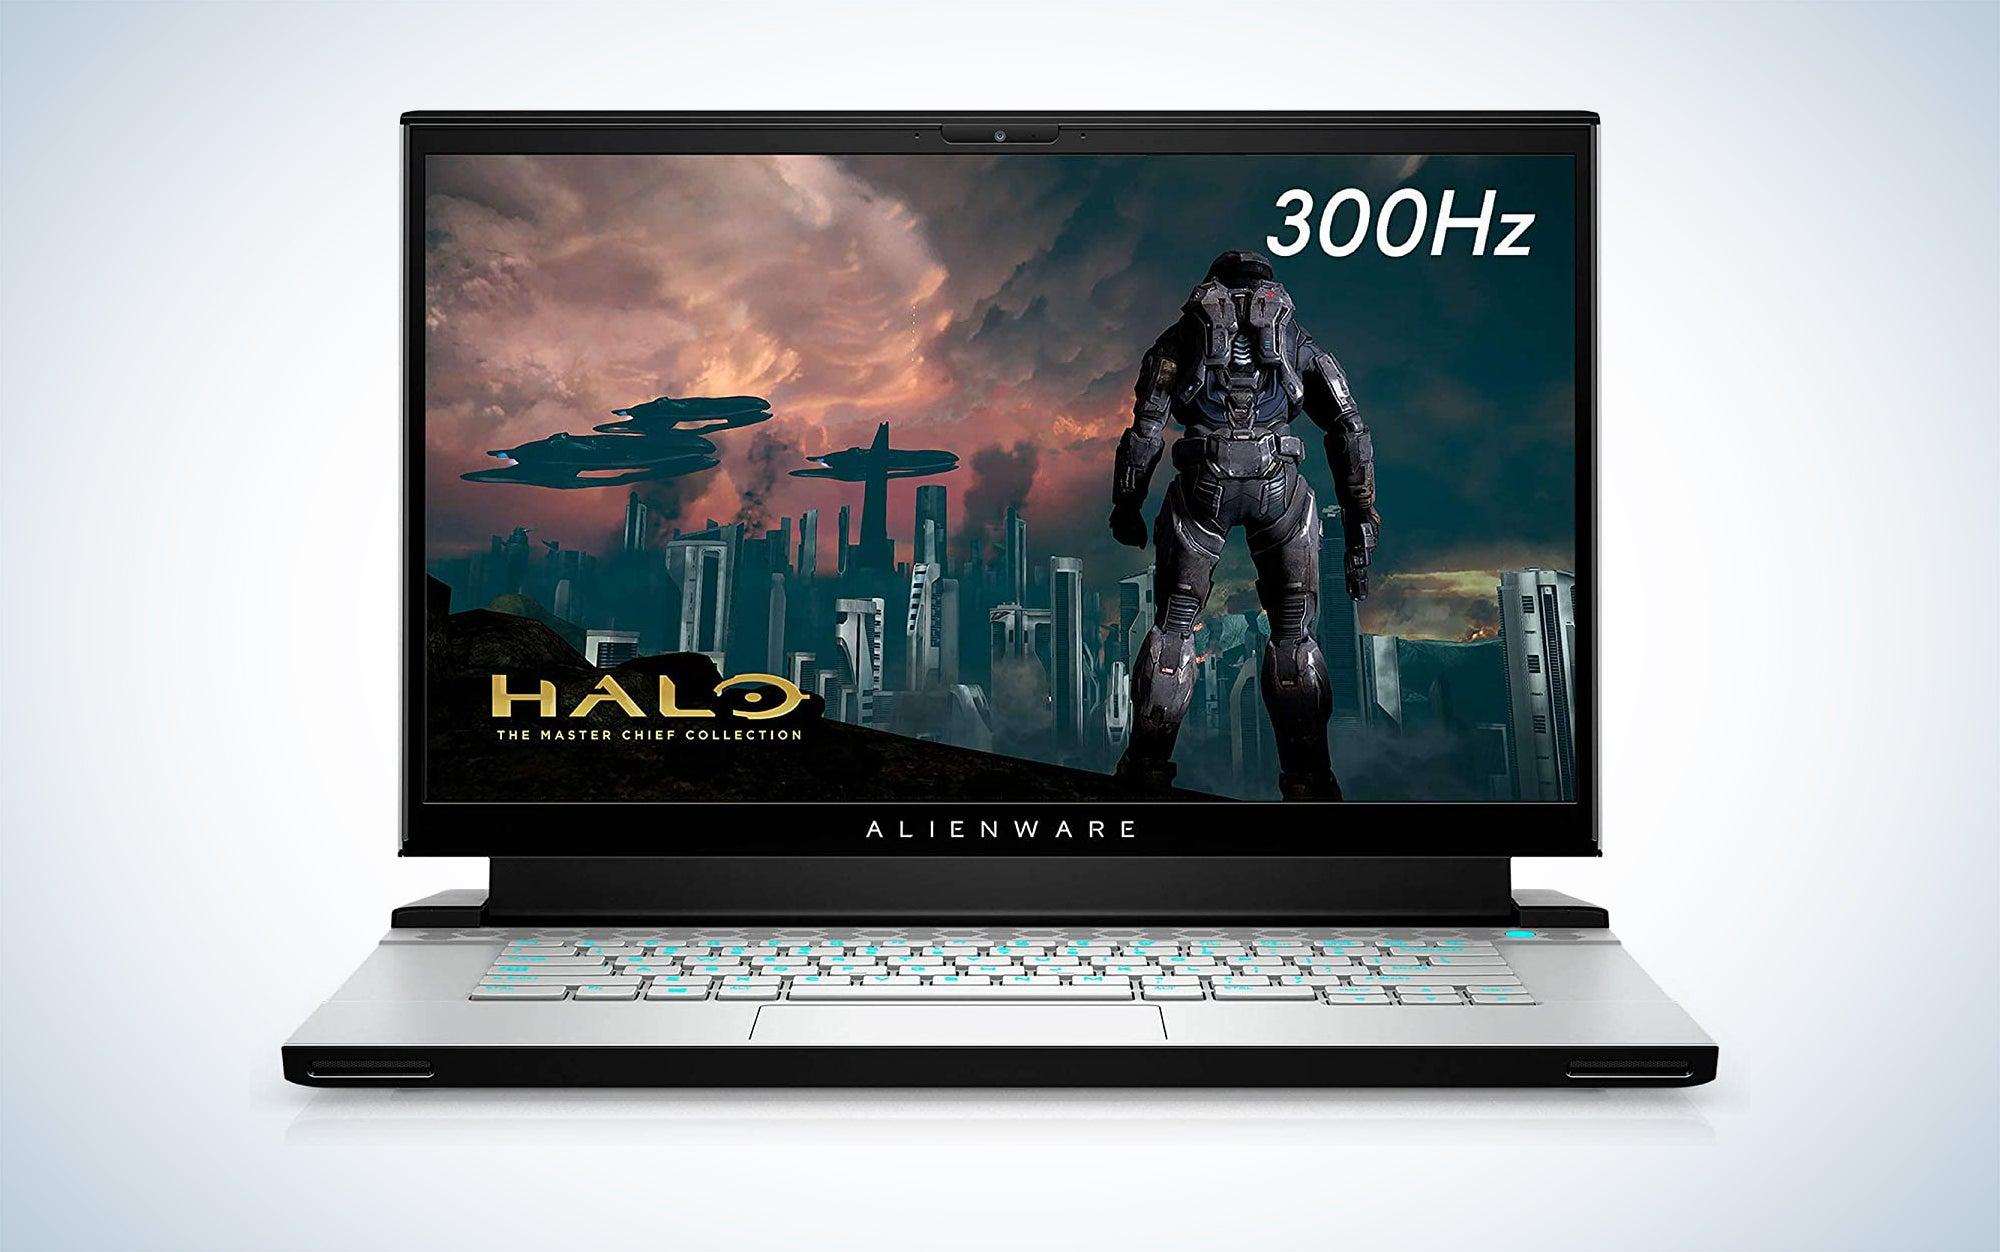 Buy the Alienware m15 15.6-inch FHD Gaming Laptop, one of the best gaming laptops for storage capacity.